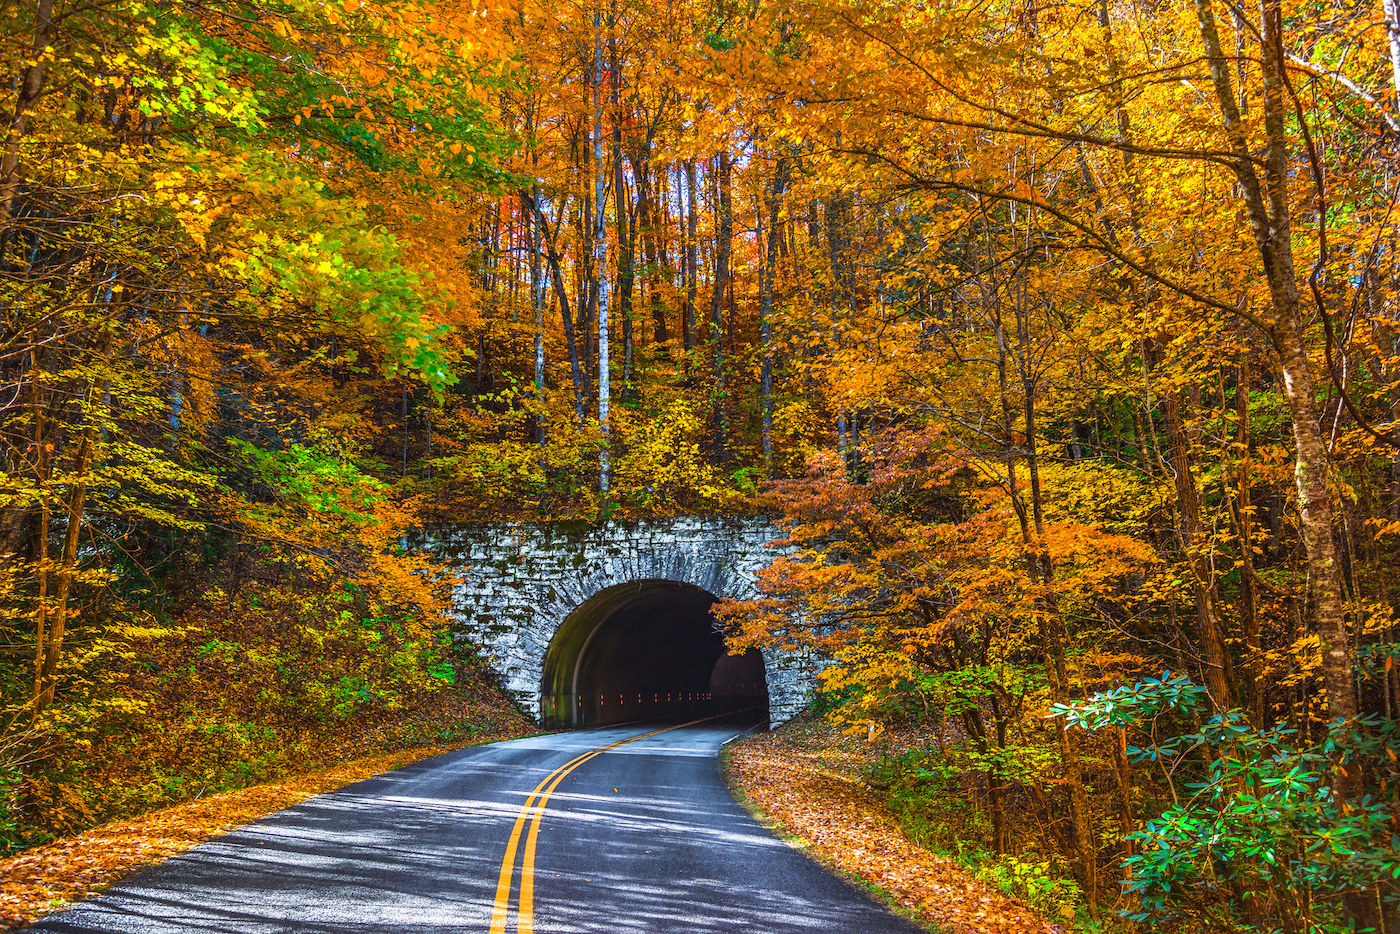 Highway leading to a tunnel in the middle of fall